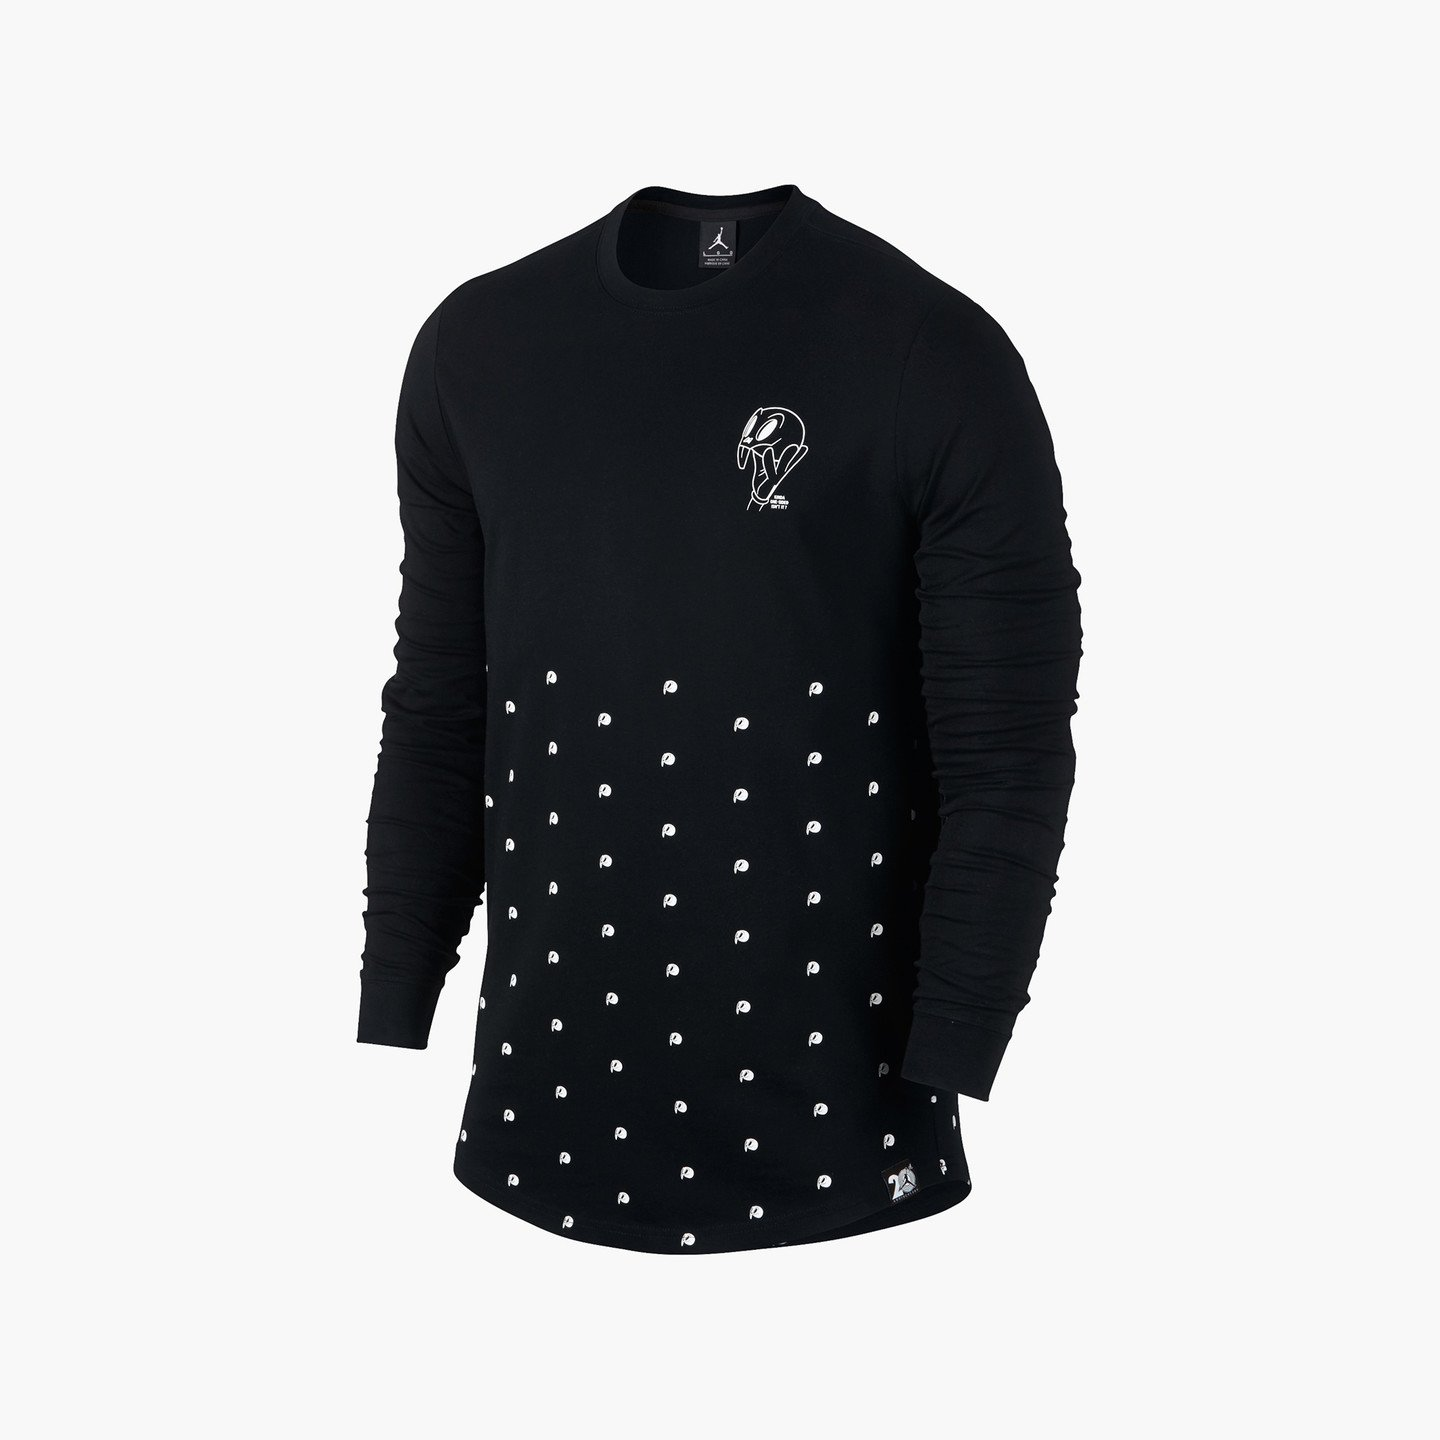 Jordan Air Jordan 11 Longsleeve Black / White 819121-010-XL